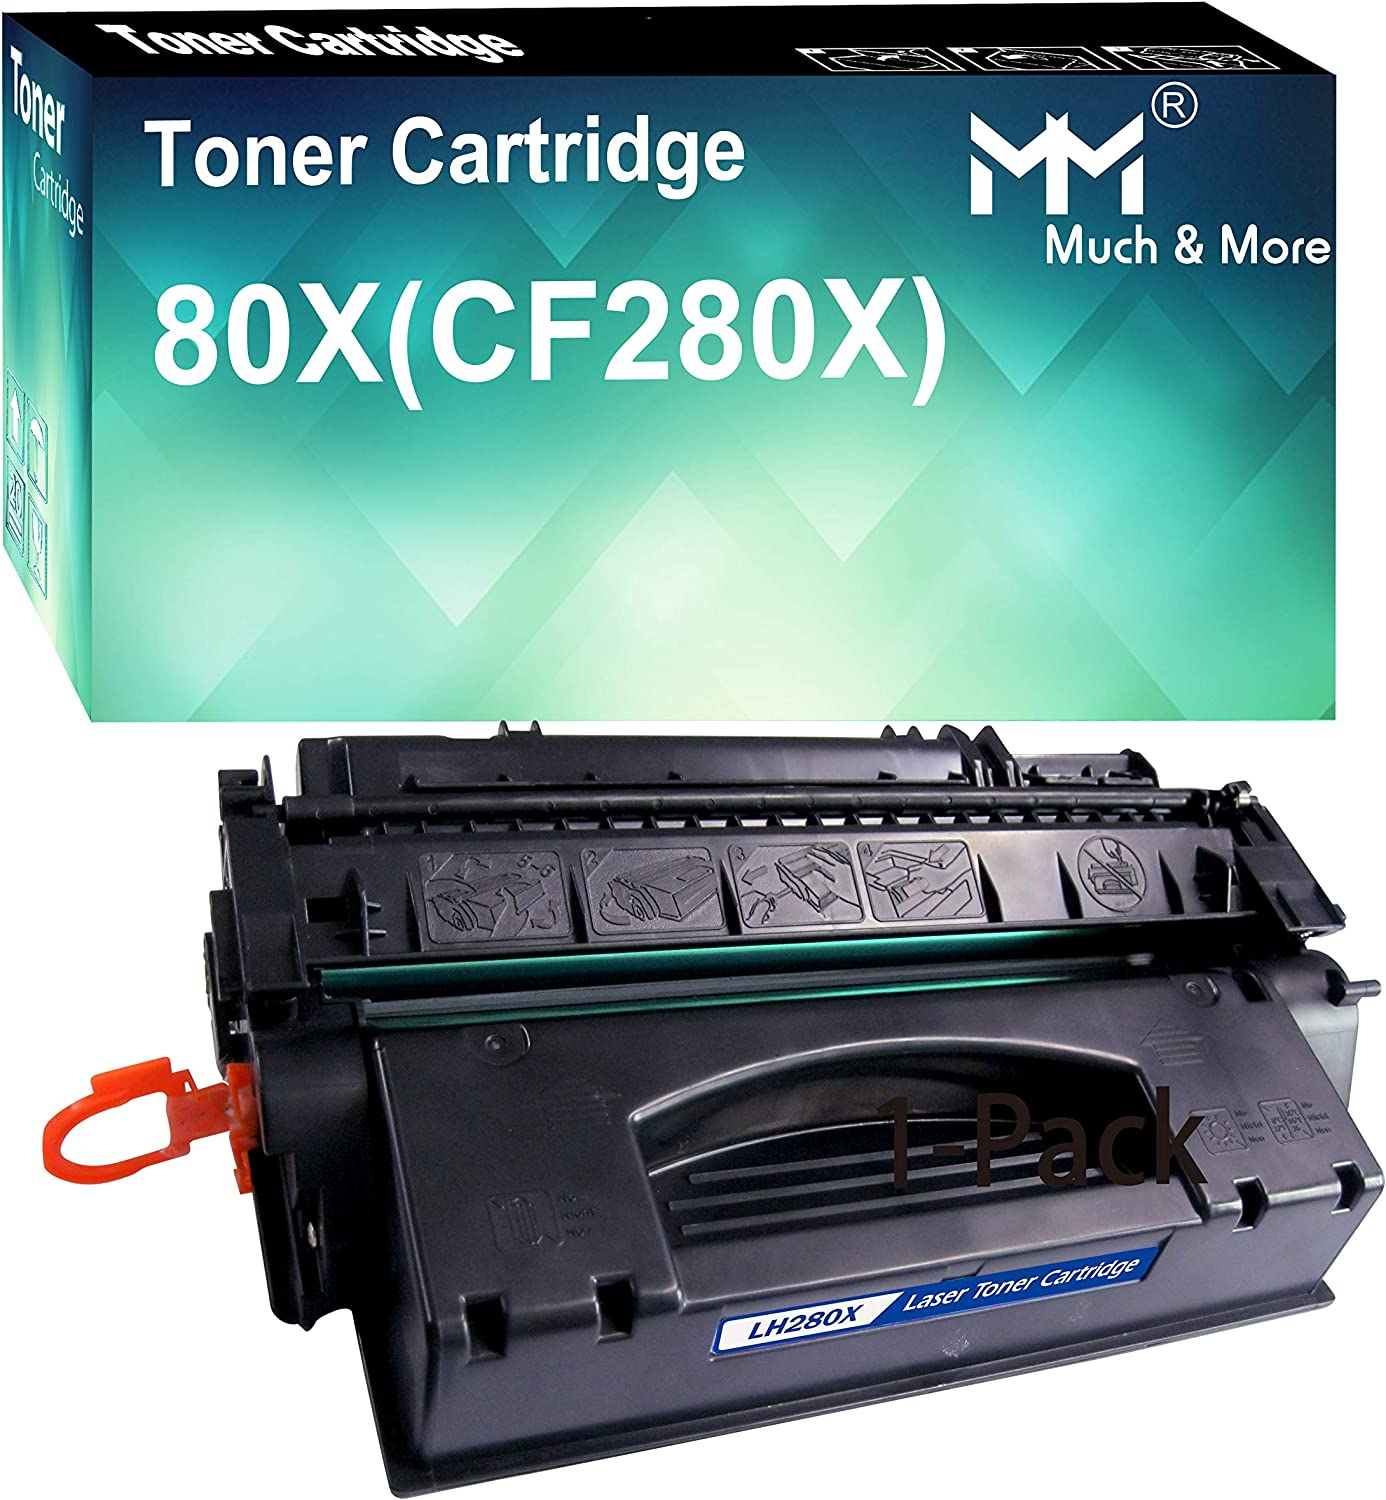 (1-Pack, Black) Compatible CF280A 80A Toner Cartridge 280A Used for HP Laserjet Pro 400 M401a M401d M401n M401dn M401dw M425dn M425dw Printer, Sold by MuchMore